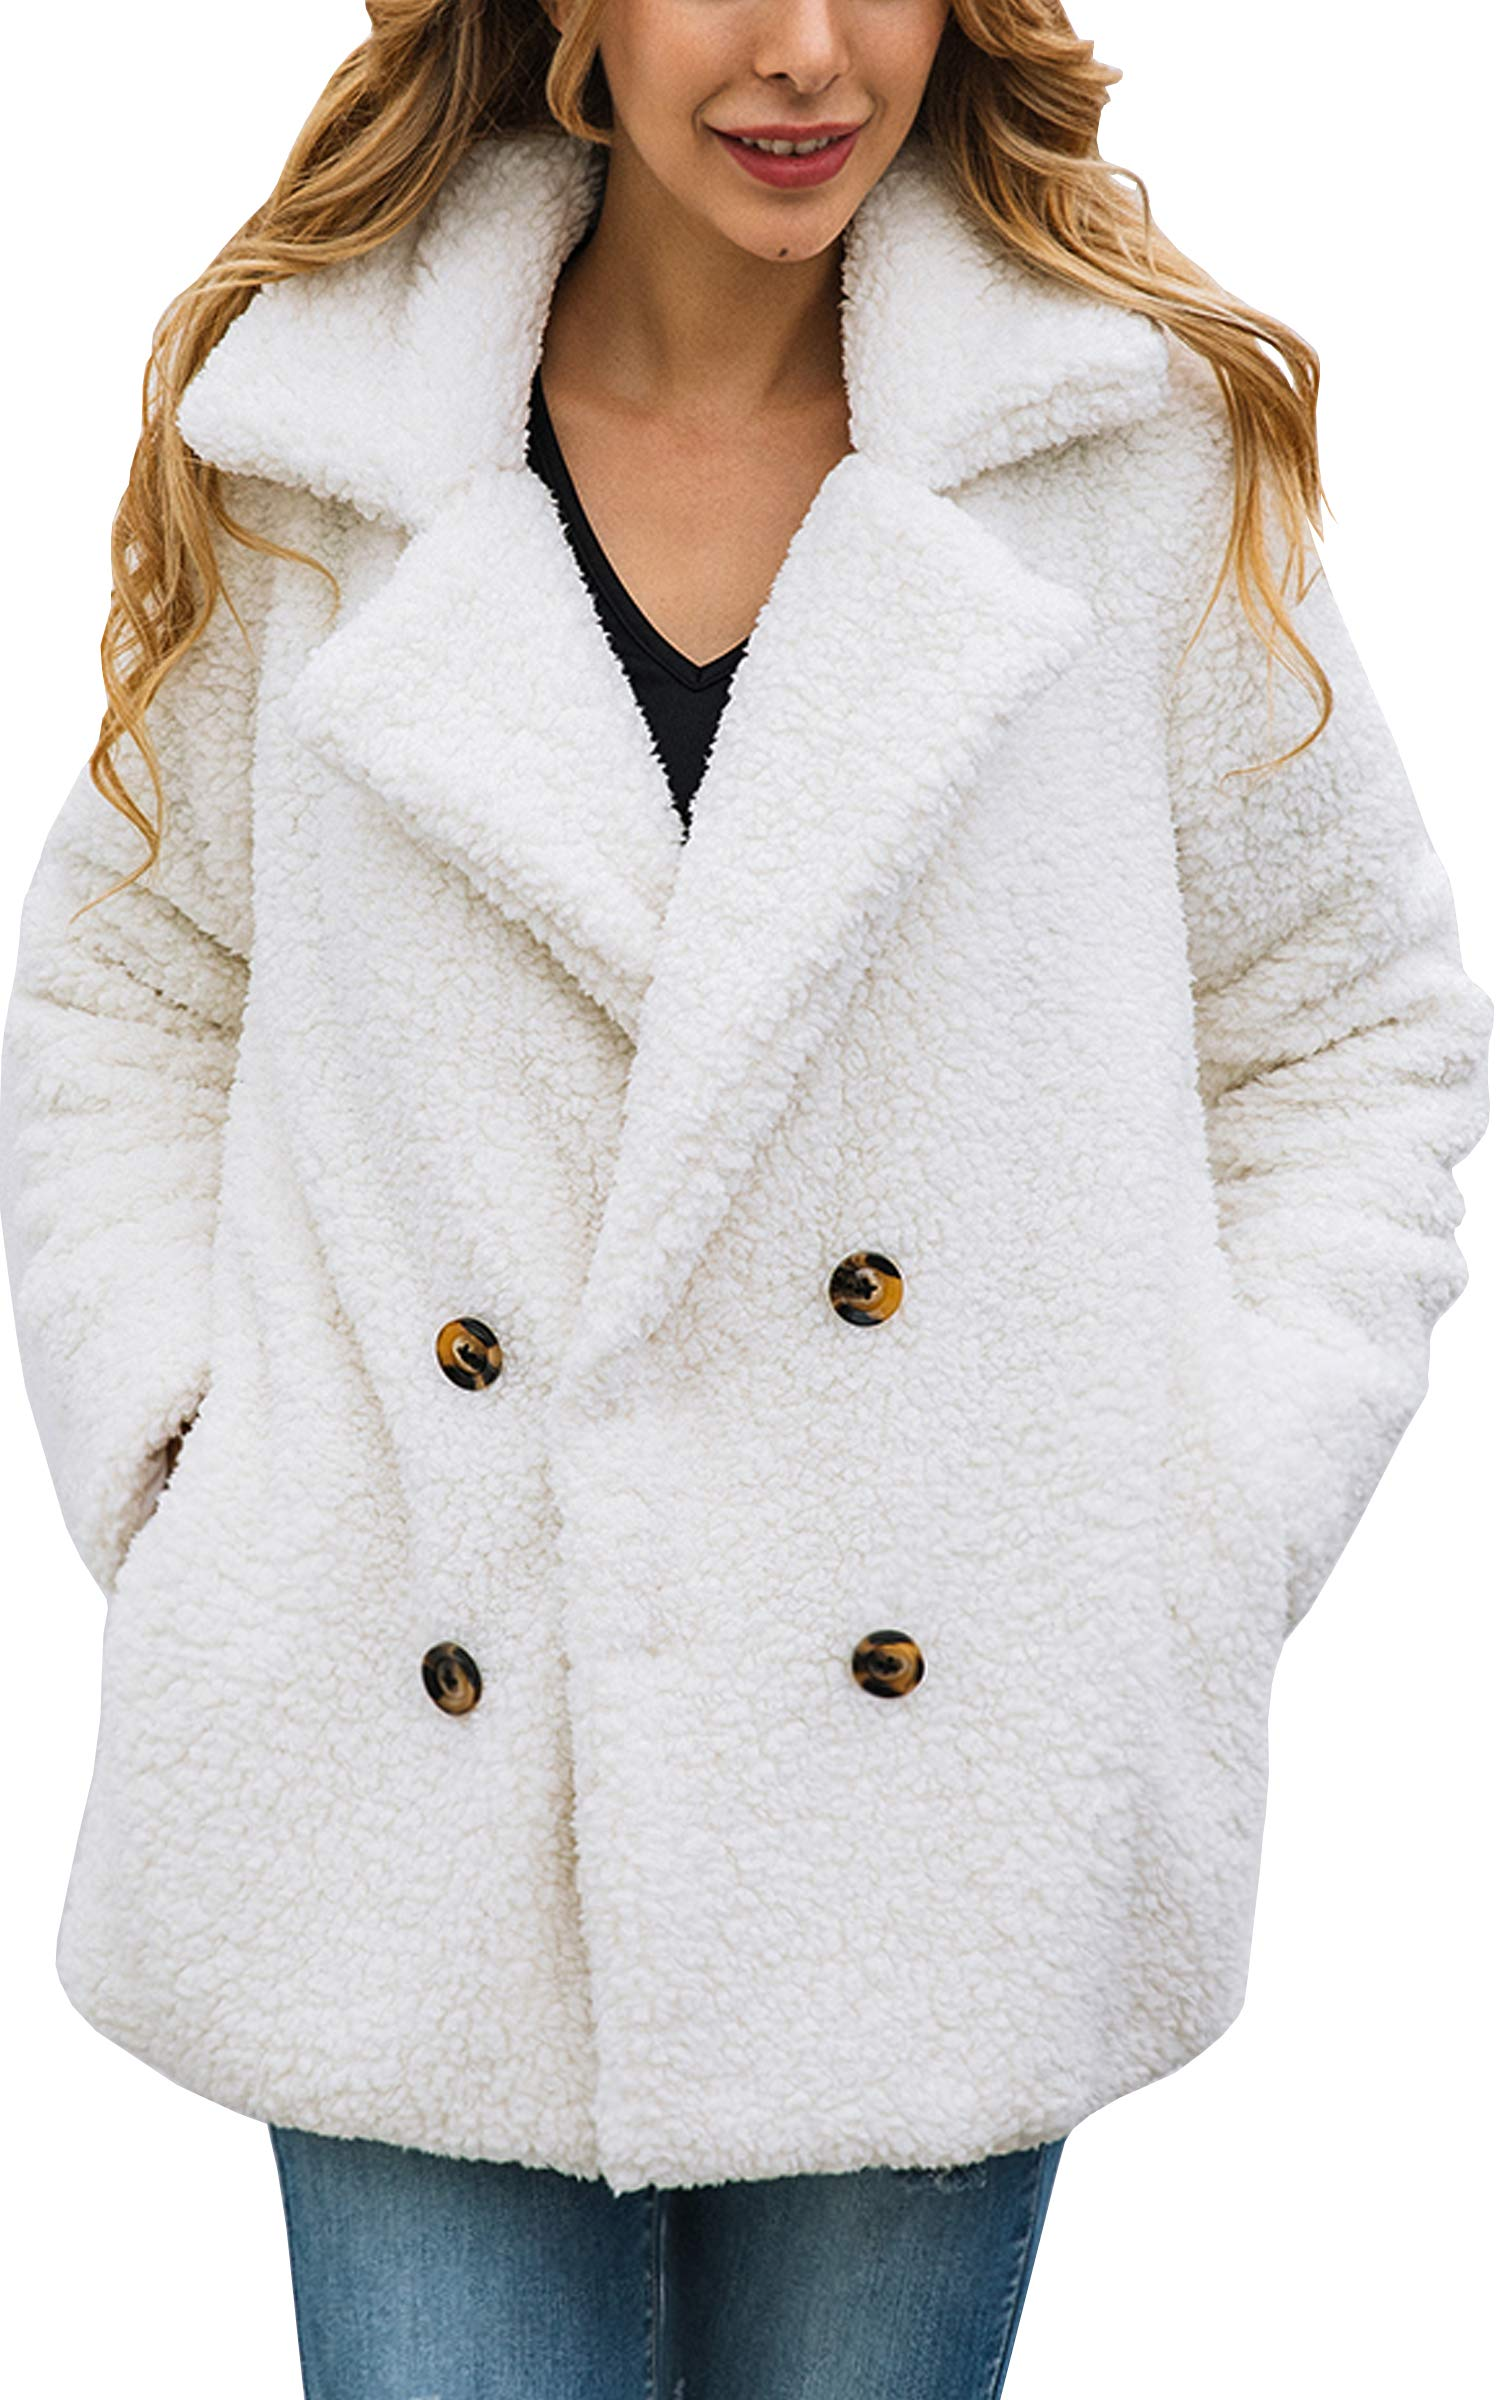 ECOWISH Womens Double Breasted Lapel Open Front Fleece Coat with Pockets Outwear White L by ECOWISH